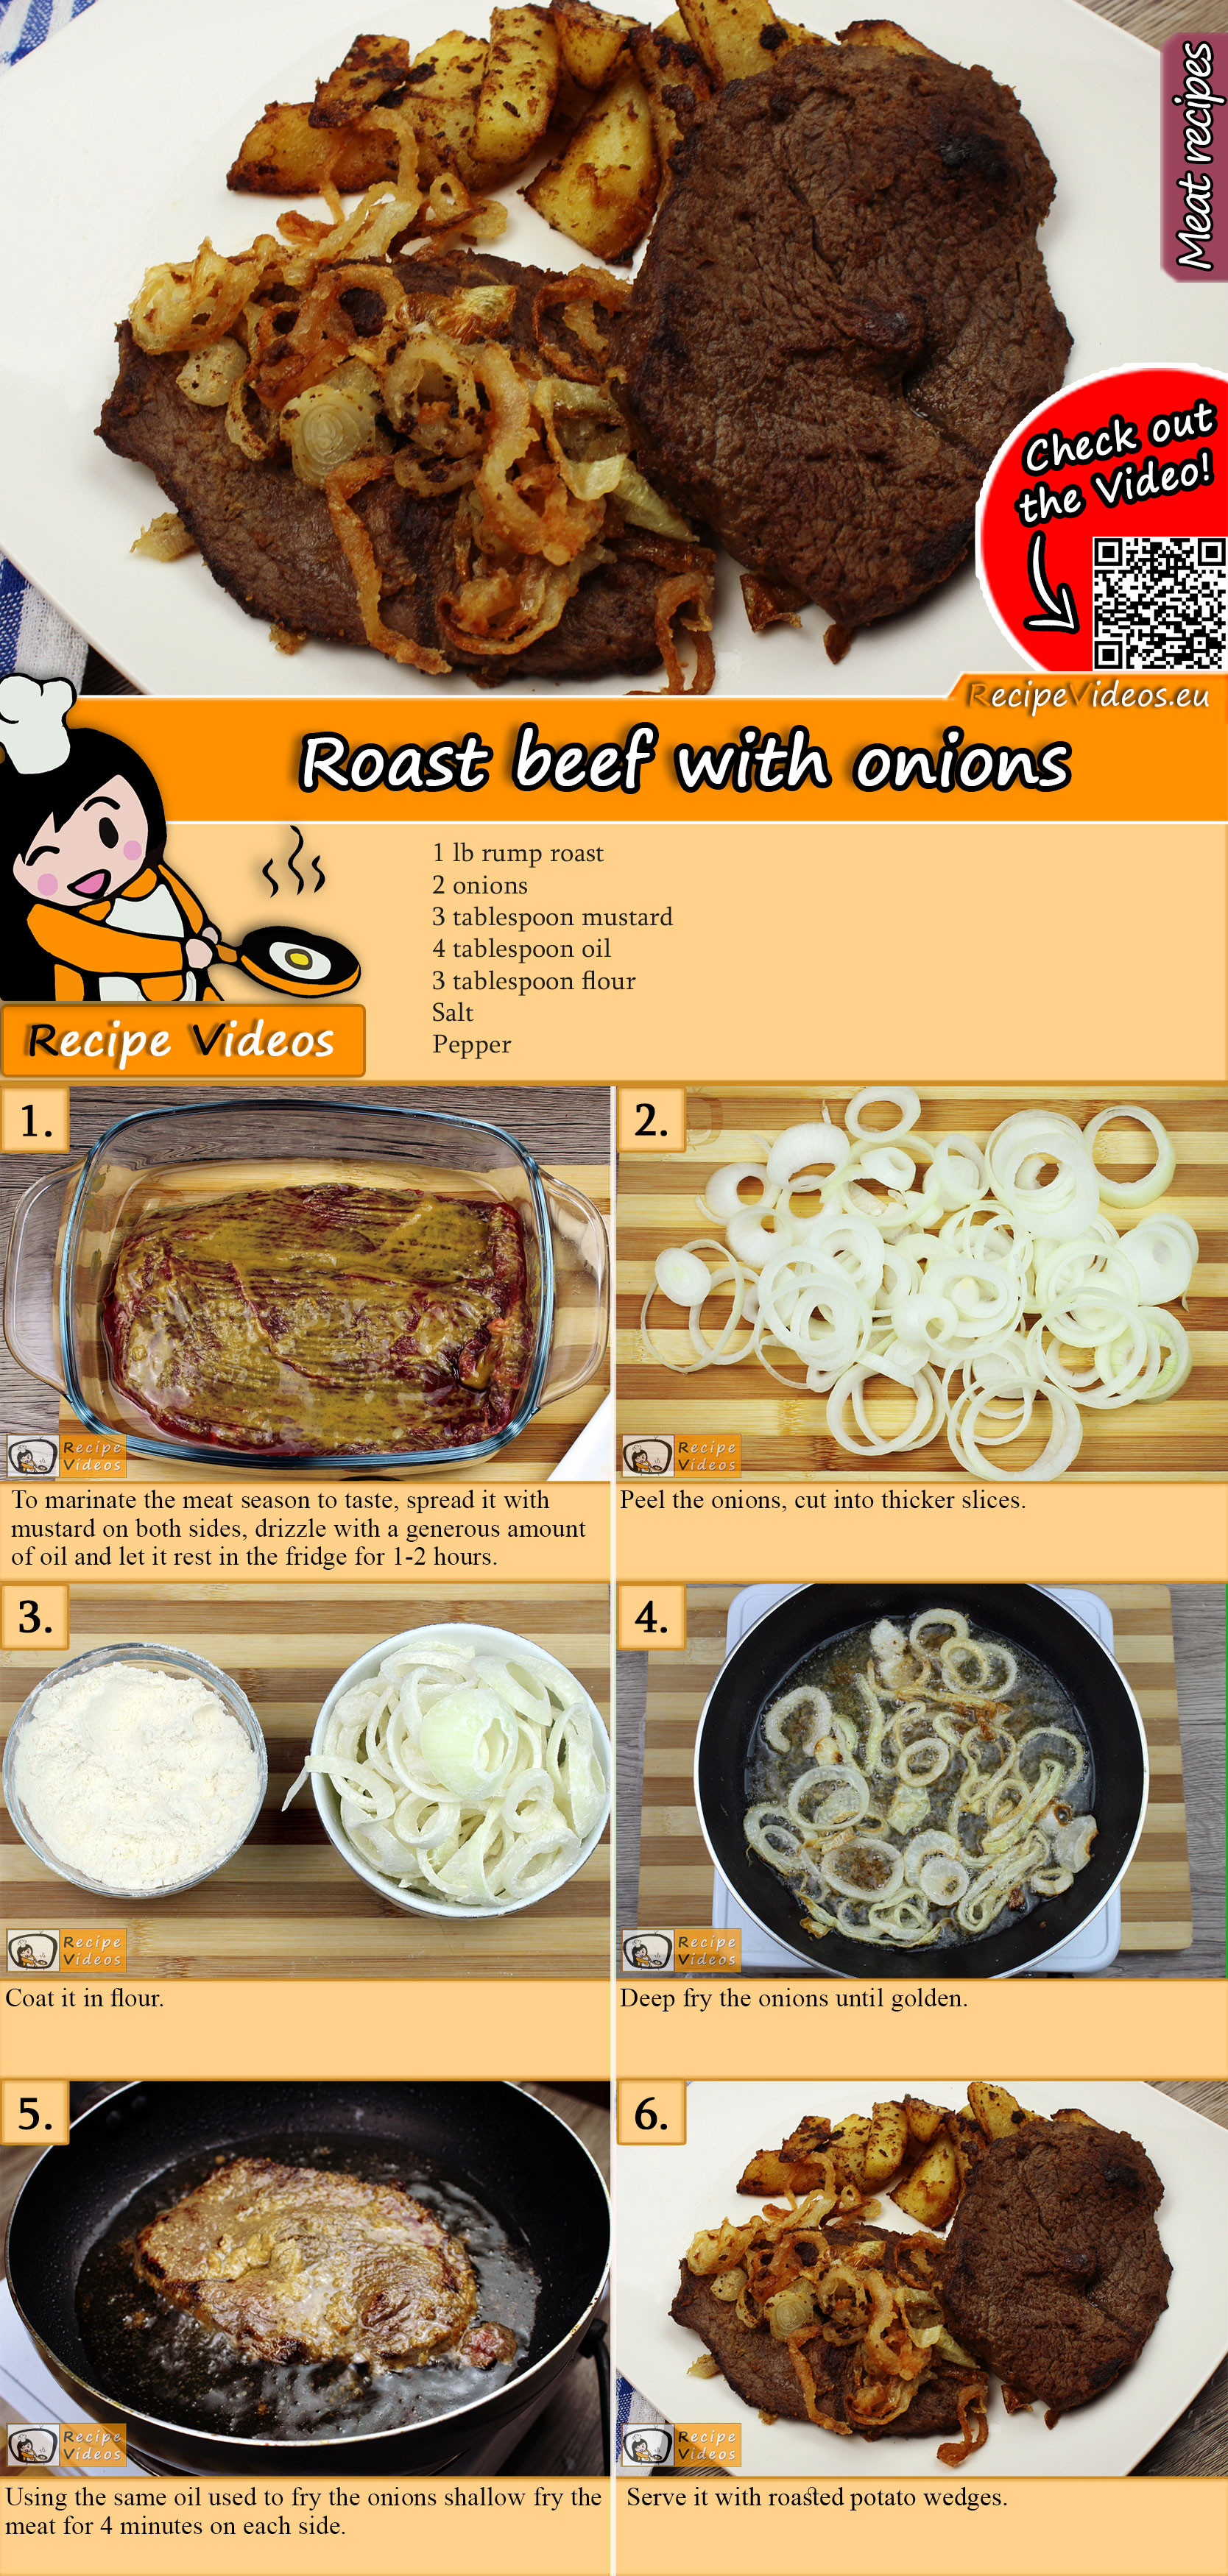 Roast beef with onions recipe with video